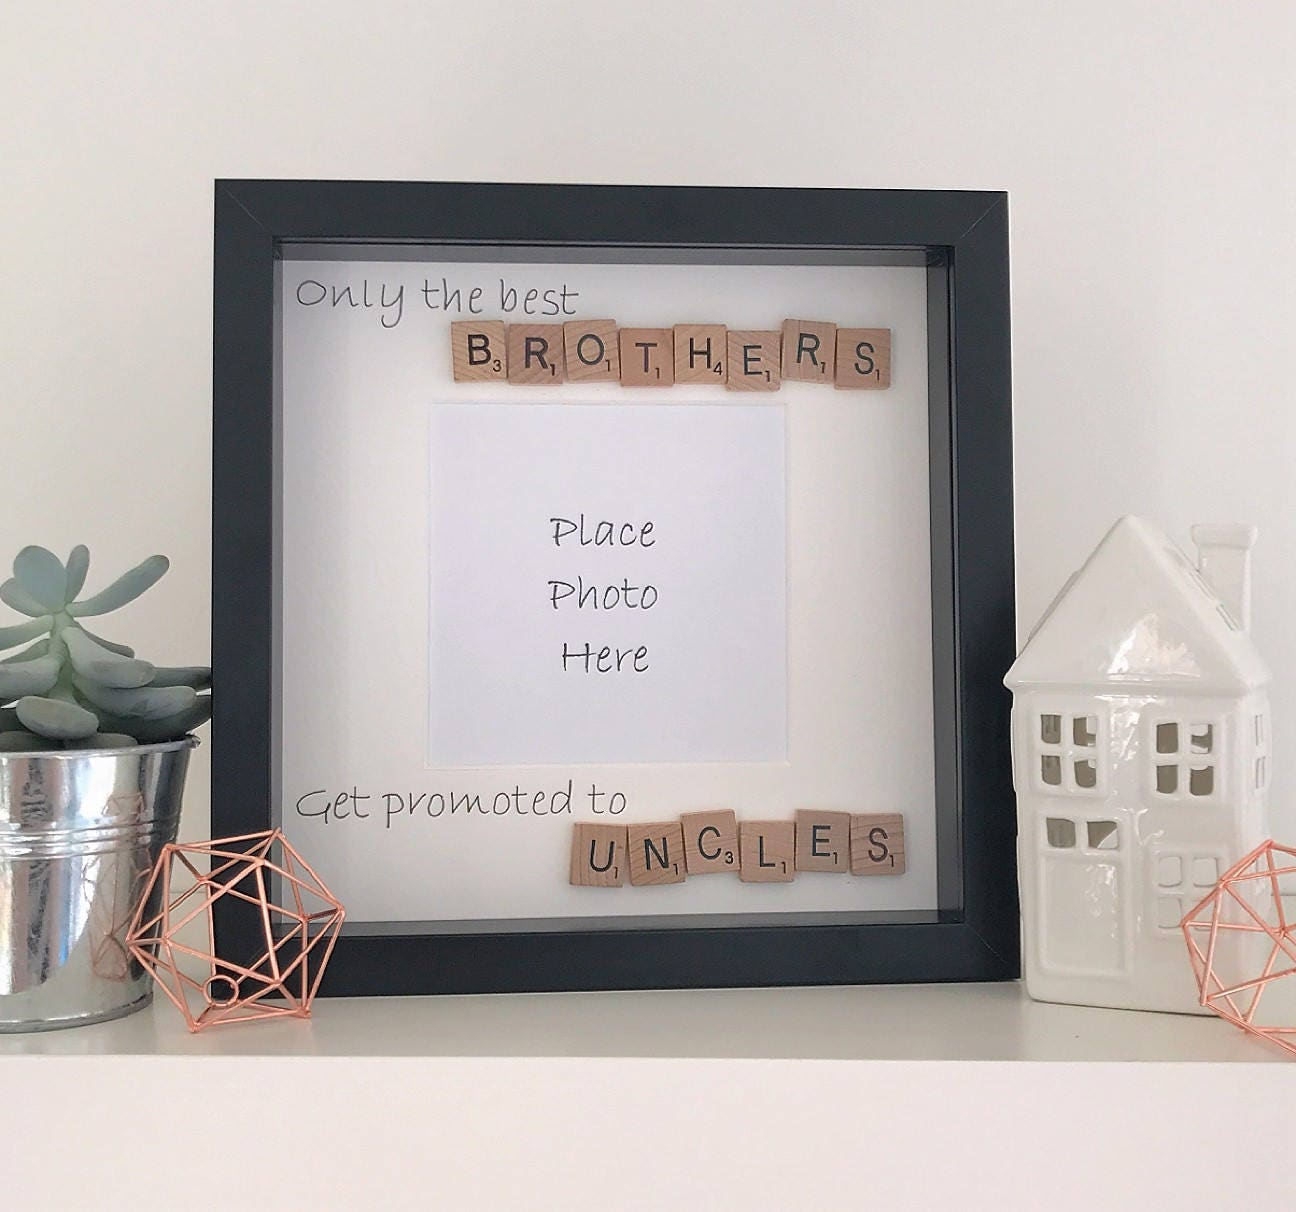 scrabble frame photo frame picture frame brother uncle | Etsy